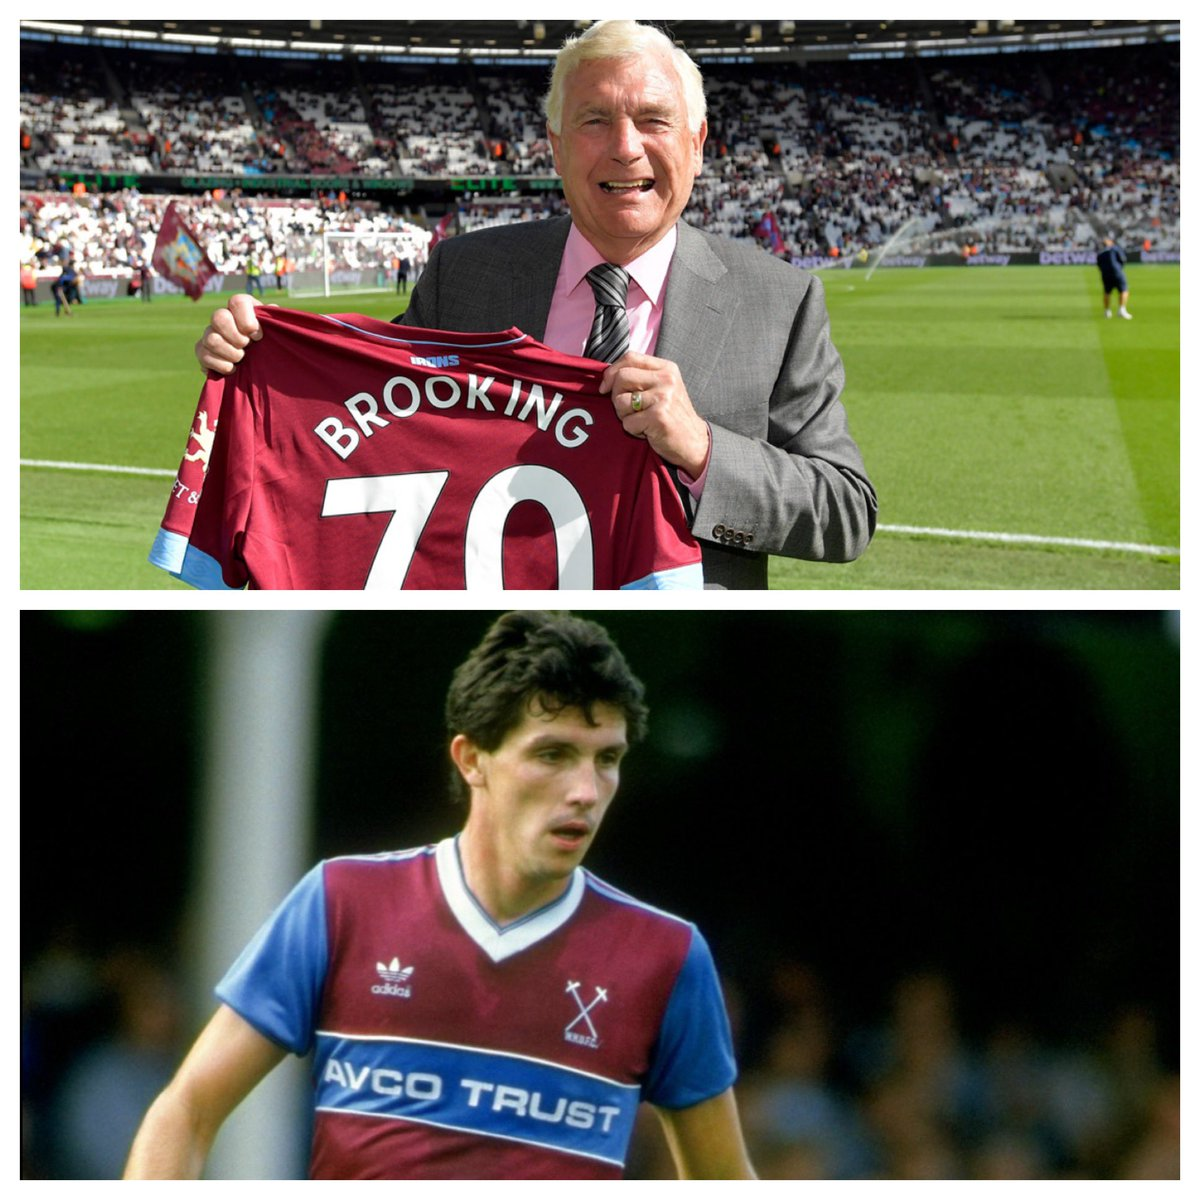 Absolutely delighted that both Sir Trevor Brooking & Tony Gale will be guest speakers at my Basildon sporting dinner, next year on 28/11/19 ! Joined by top comedian @joshdanielscouk + @simplymagic19 & @JuliaHolland. More big names to be announced #watchthisspace #westham #legends